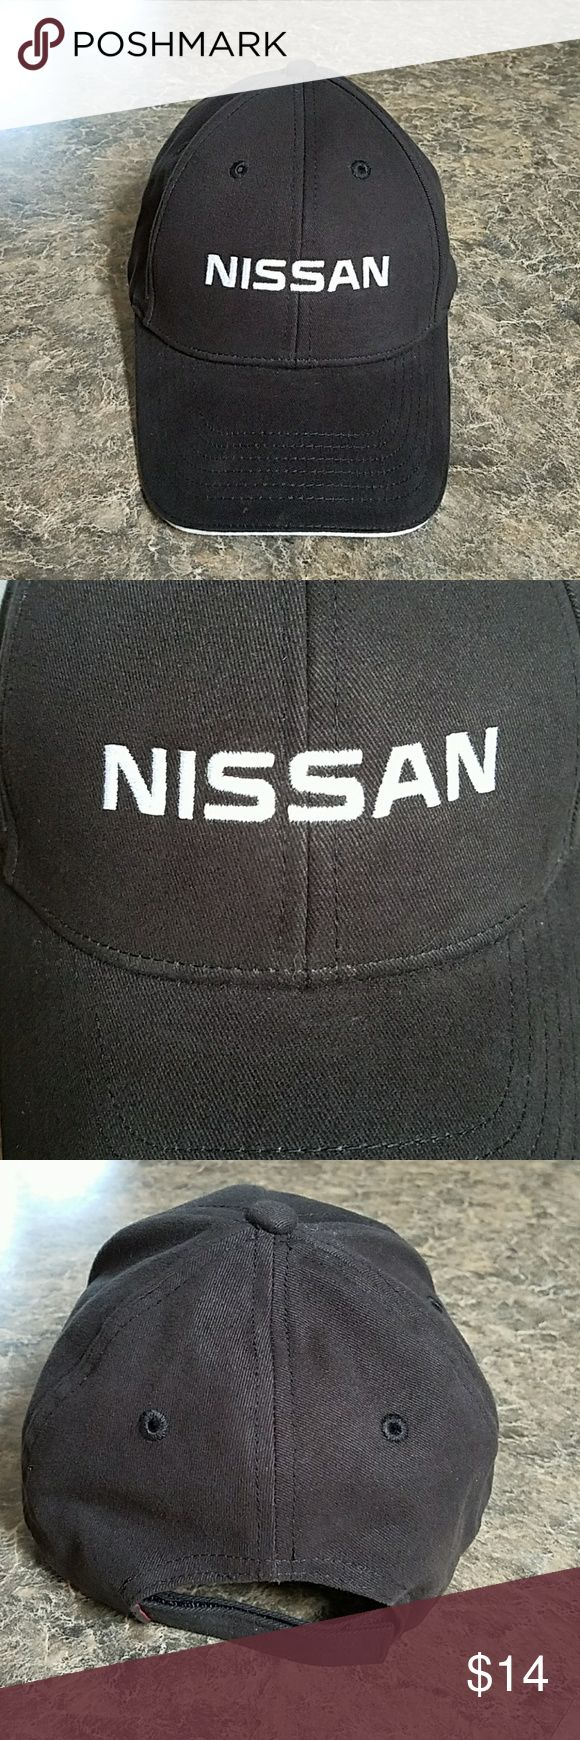 Authentic nissan cap straight from the dealership